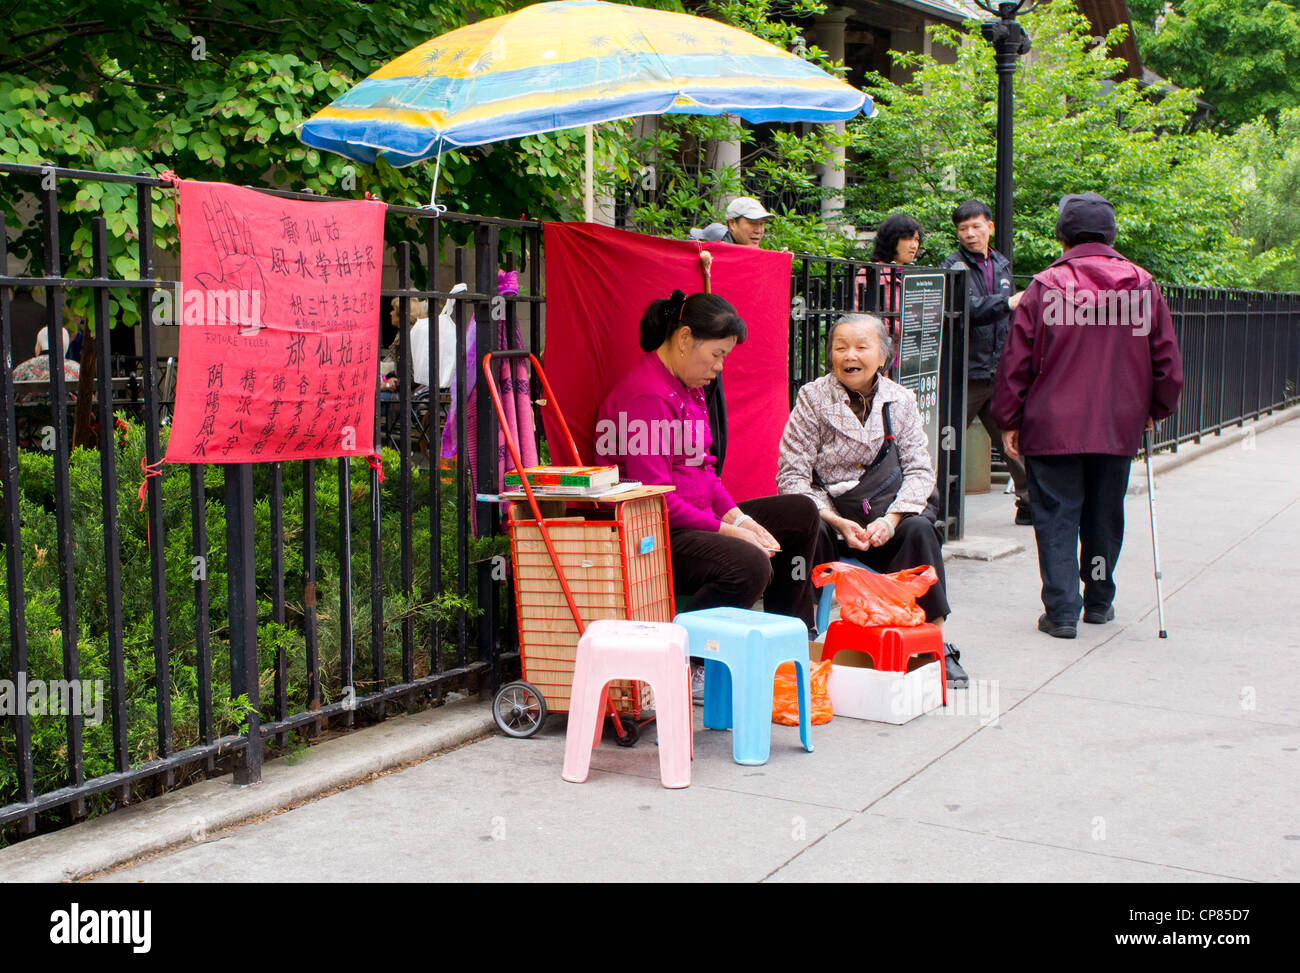 A Chinese fortune teller listens to her client in Chinatown, New York City. - Stock Image